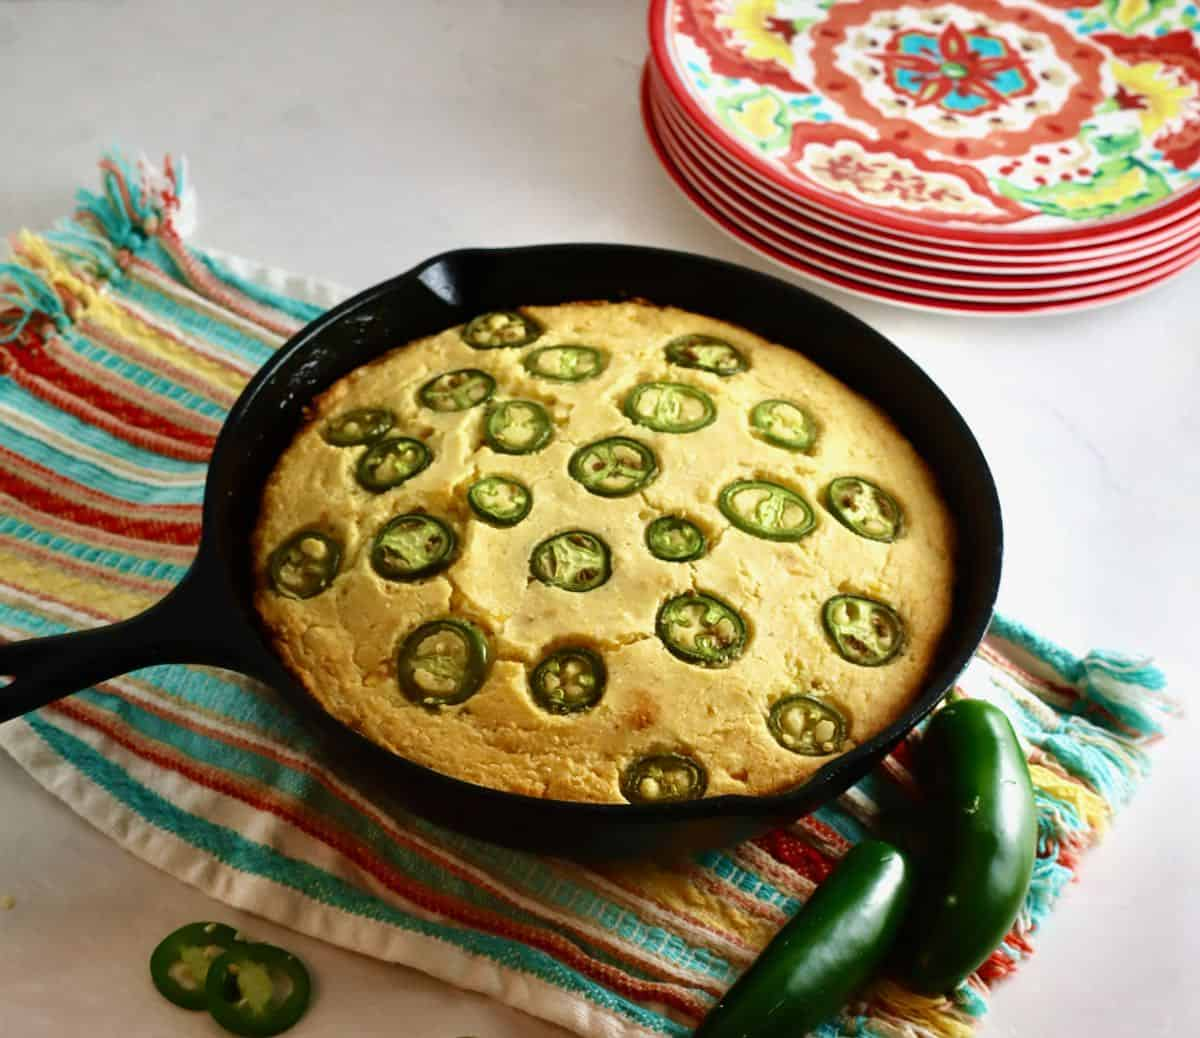 Jalapeno cornbread in a cast iron skillet on a colorful dish towel.